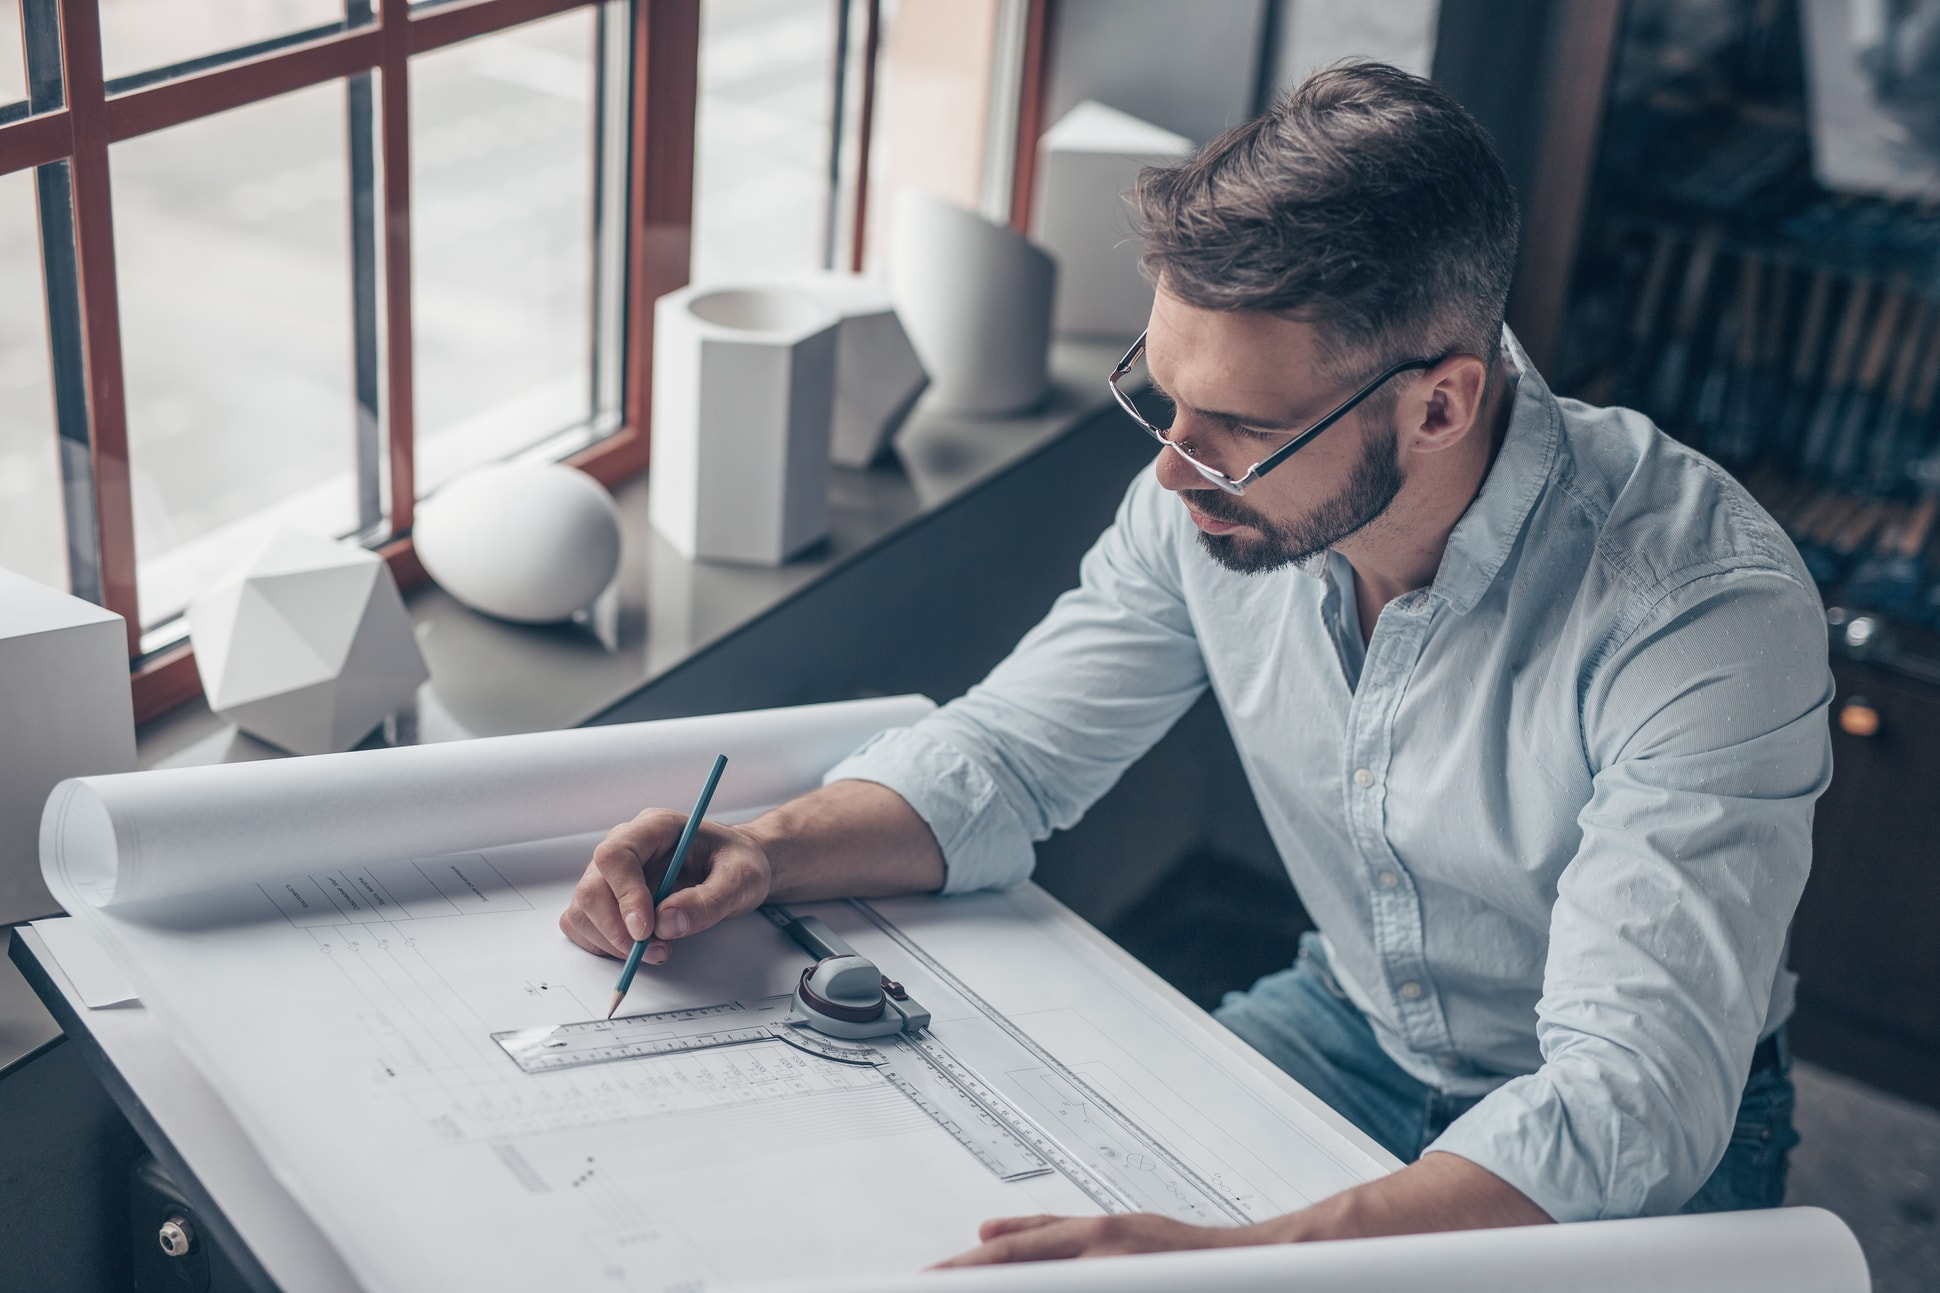 Is Architecture a Good Career Option? Things To Know Before Selecting Architecture As Major - Vati | Career Assessment & Planning Platform | CAPP